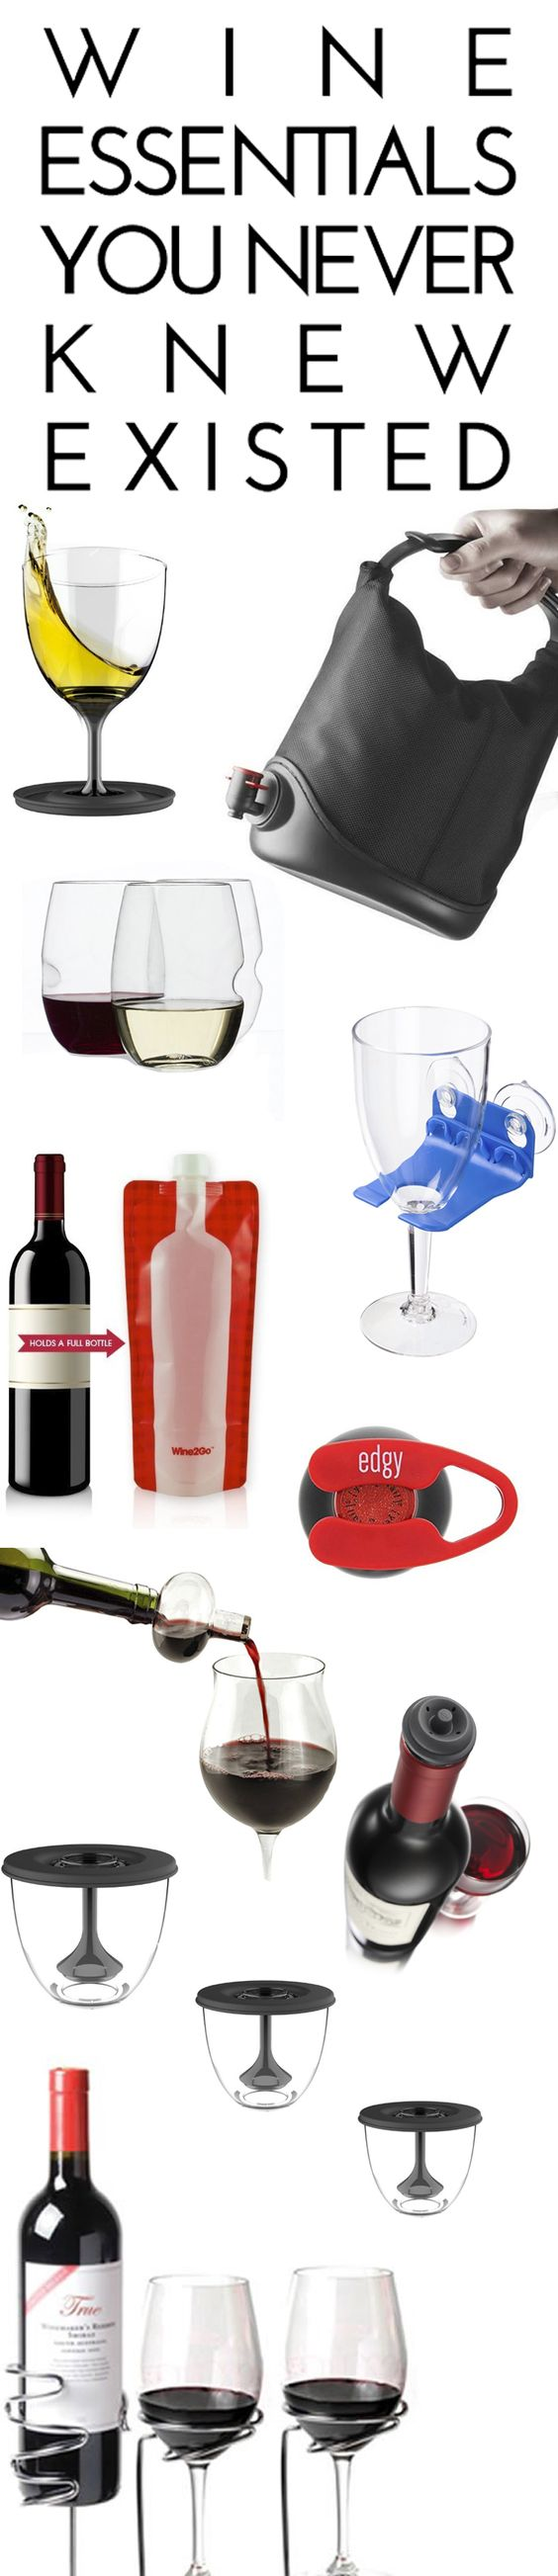 Wine Essentials You Never Knew Existed: Bathtub Wine Glass Holder, Collapsible Wine Glasses, Foldable Wine Bag, Wine Coat, Wine Bottle Foil Cutter, Picnic Stix Wine Stakes, and more.    Amazon.com